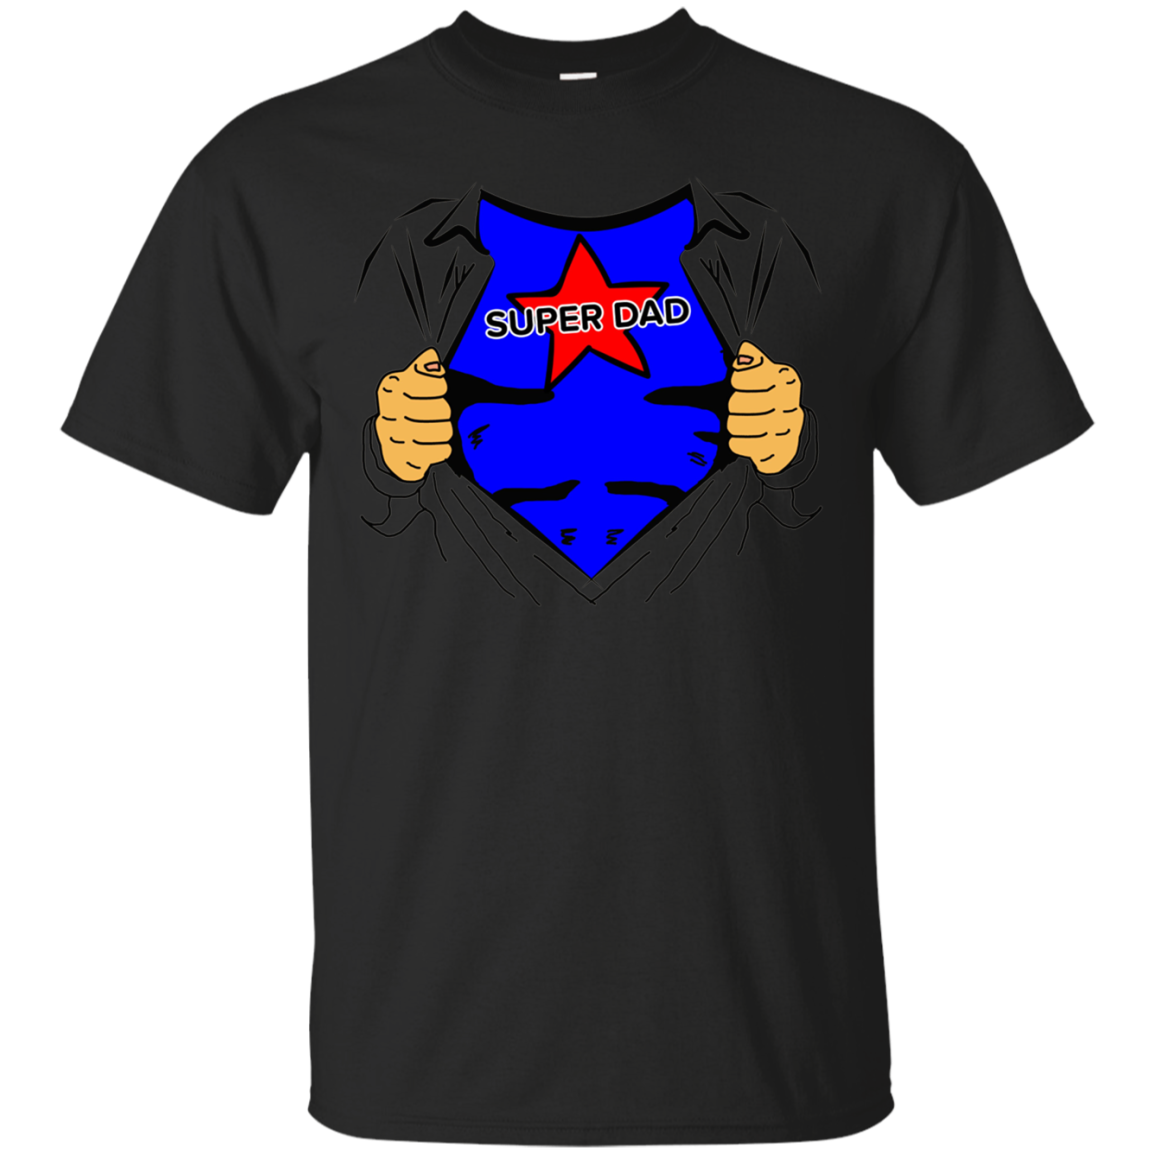 My Dad Is Super Men Funny Cute T-shirt Gift For Father's Day